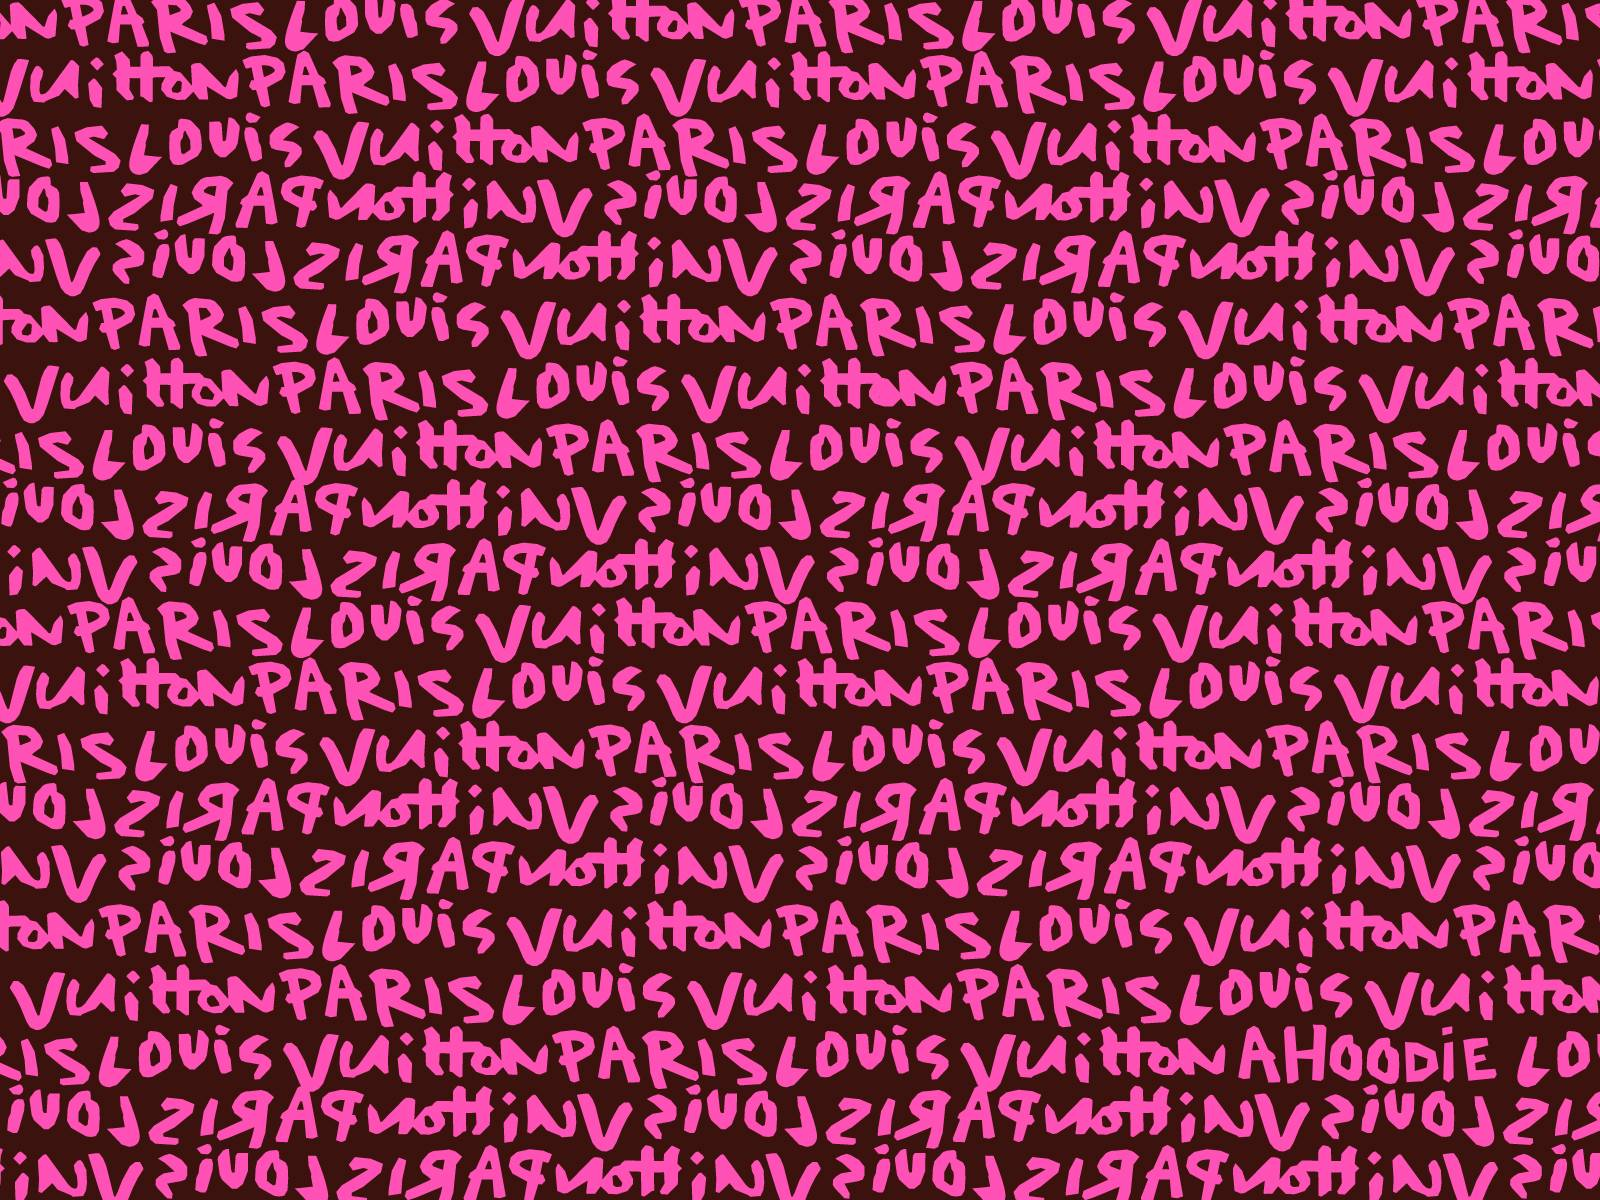 Louis Vuitton Logo Wallpaper Pink Louis Vuitton Backgrou...